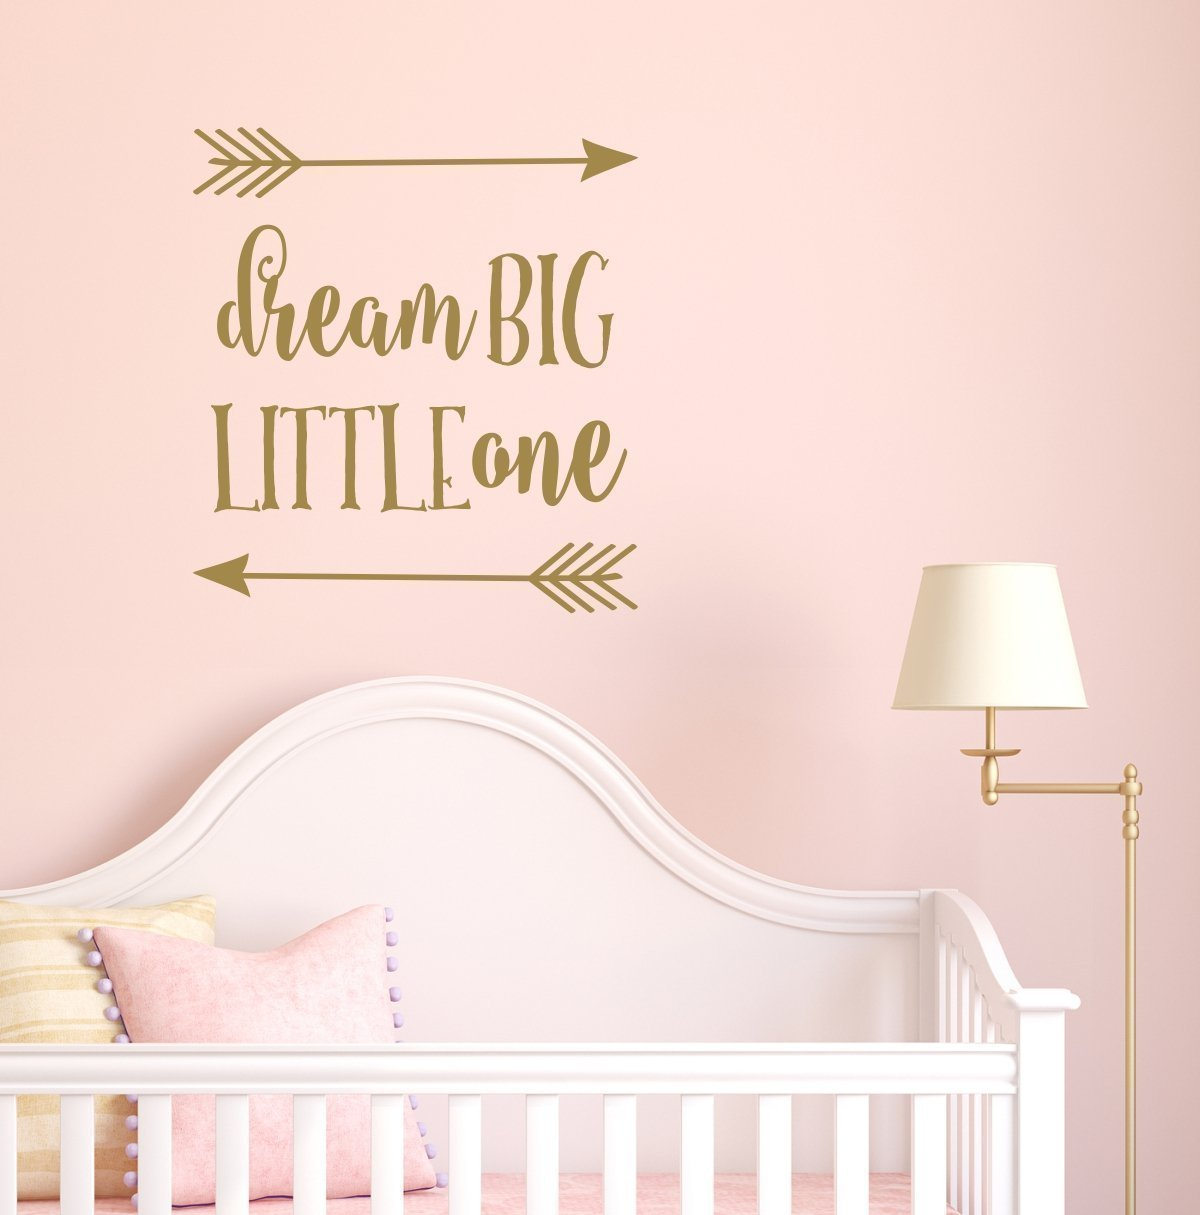 Amazon dream big little one wall decal pink and gold nursery amazon dream big little one wall decal pink and gold nursery rustic nursery decor handmade amipublicfo Images